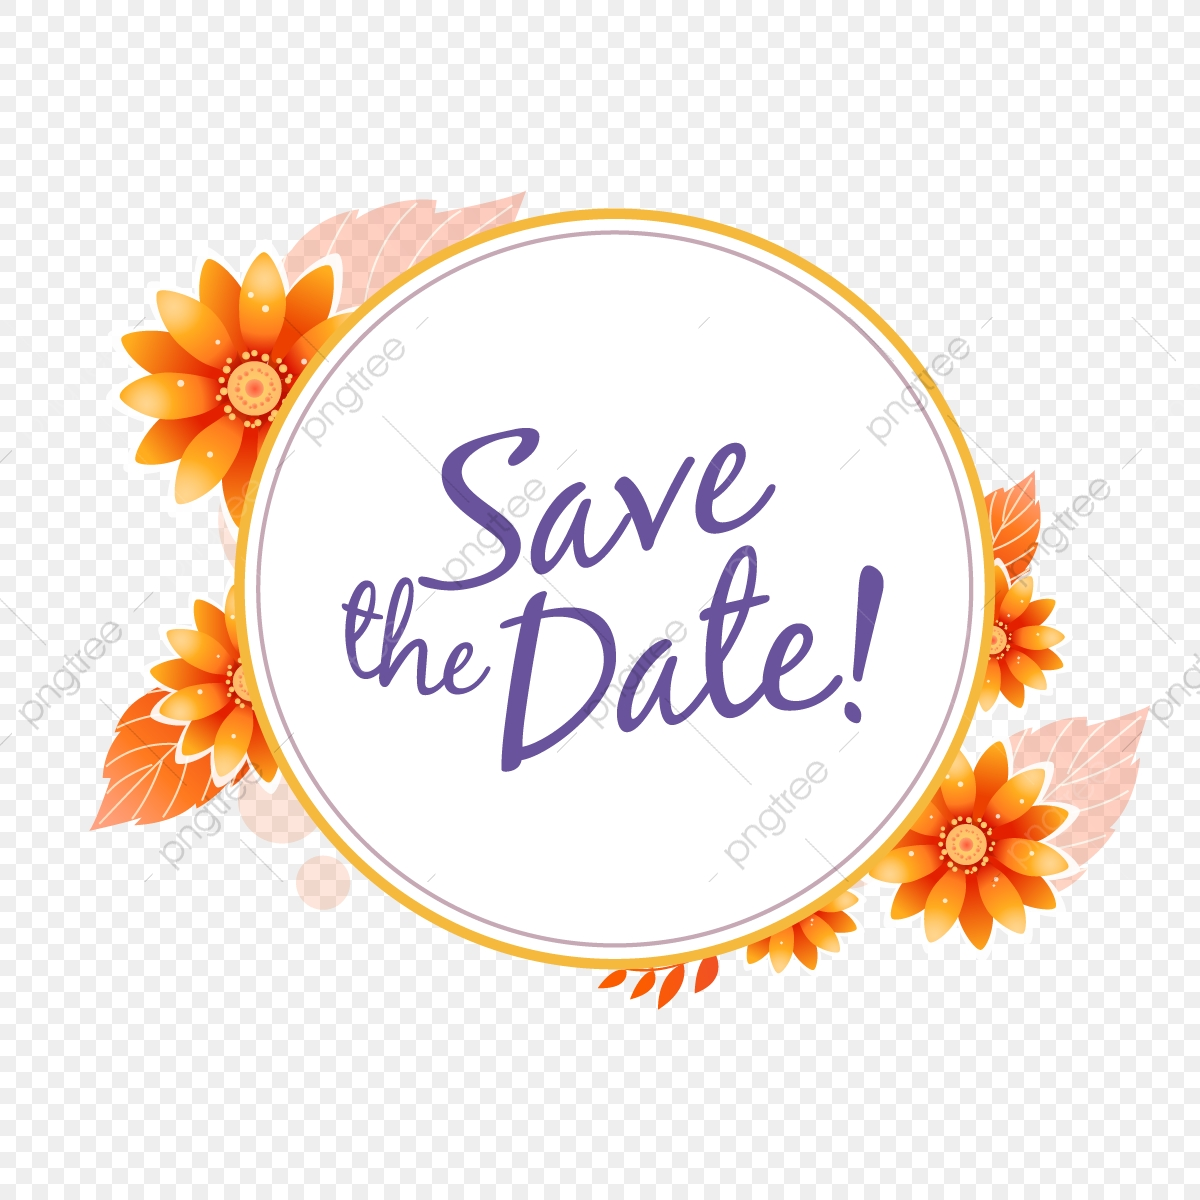 Save the date wedding templates download free clip art with.